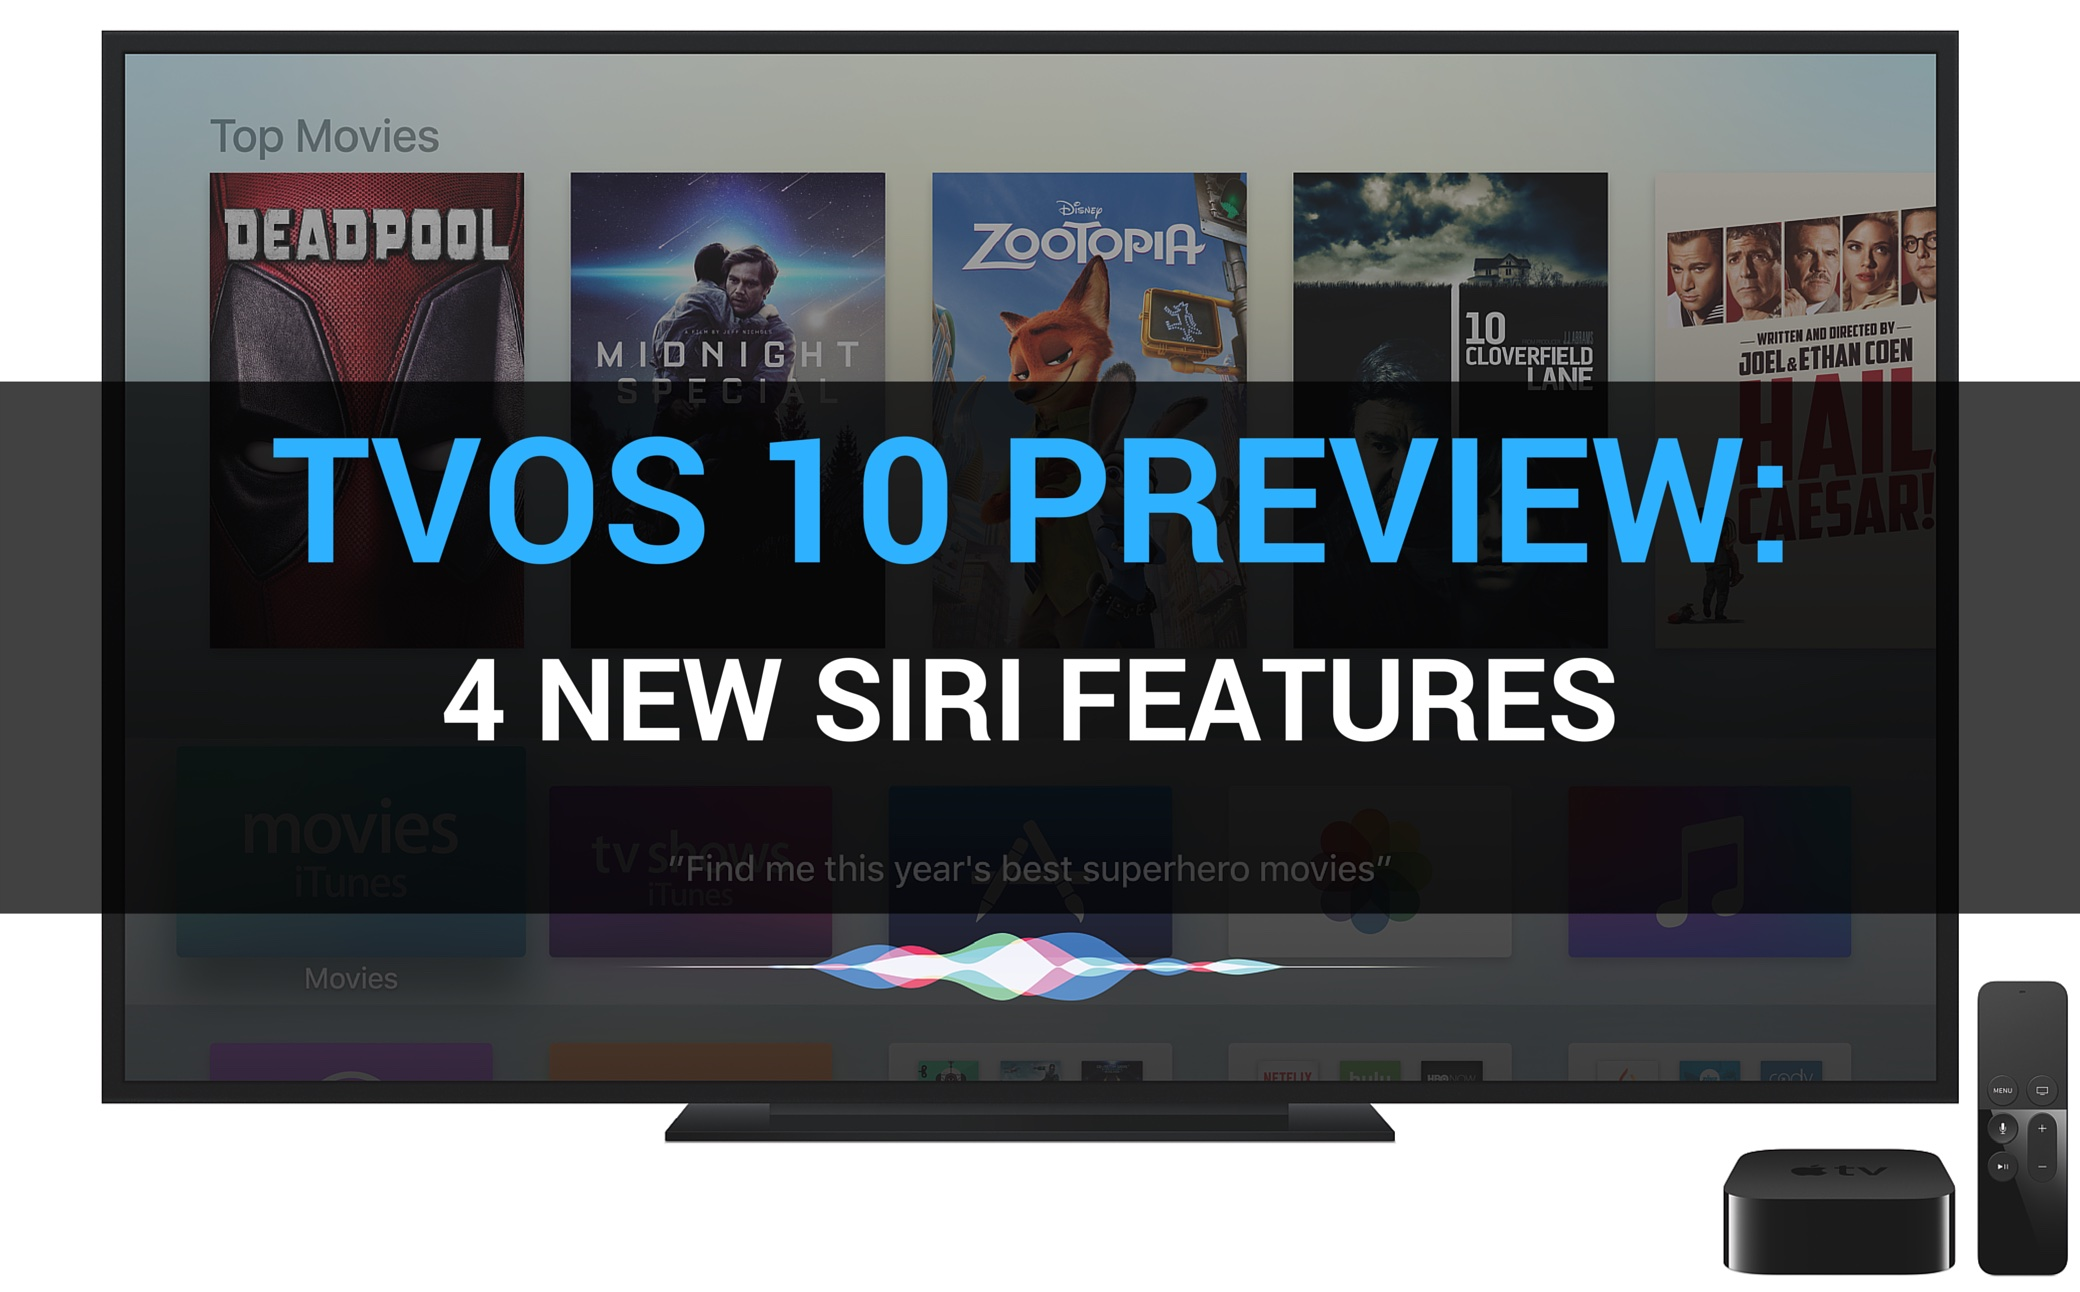 tvos 10 preview four new siri features apple tv teaser 001